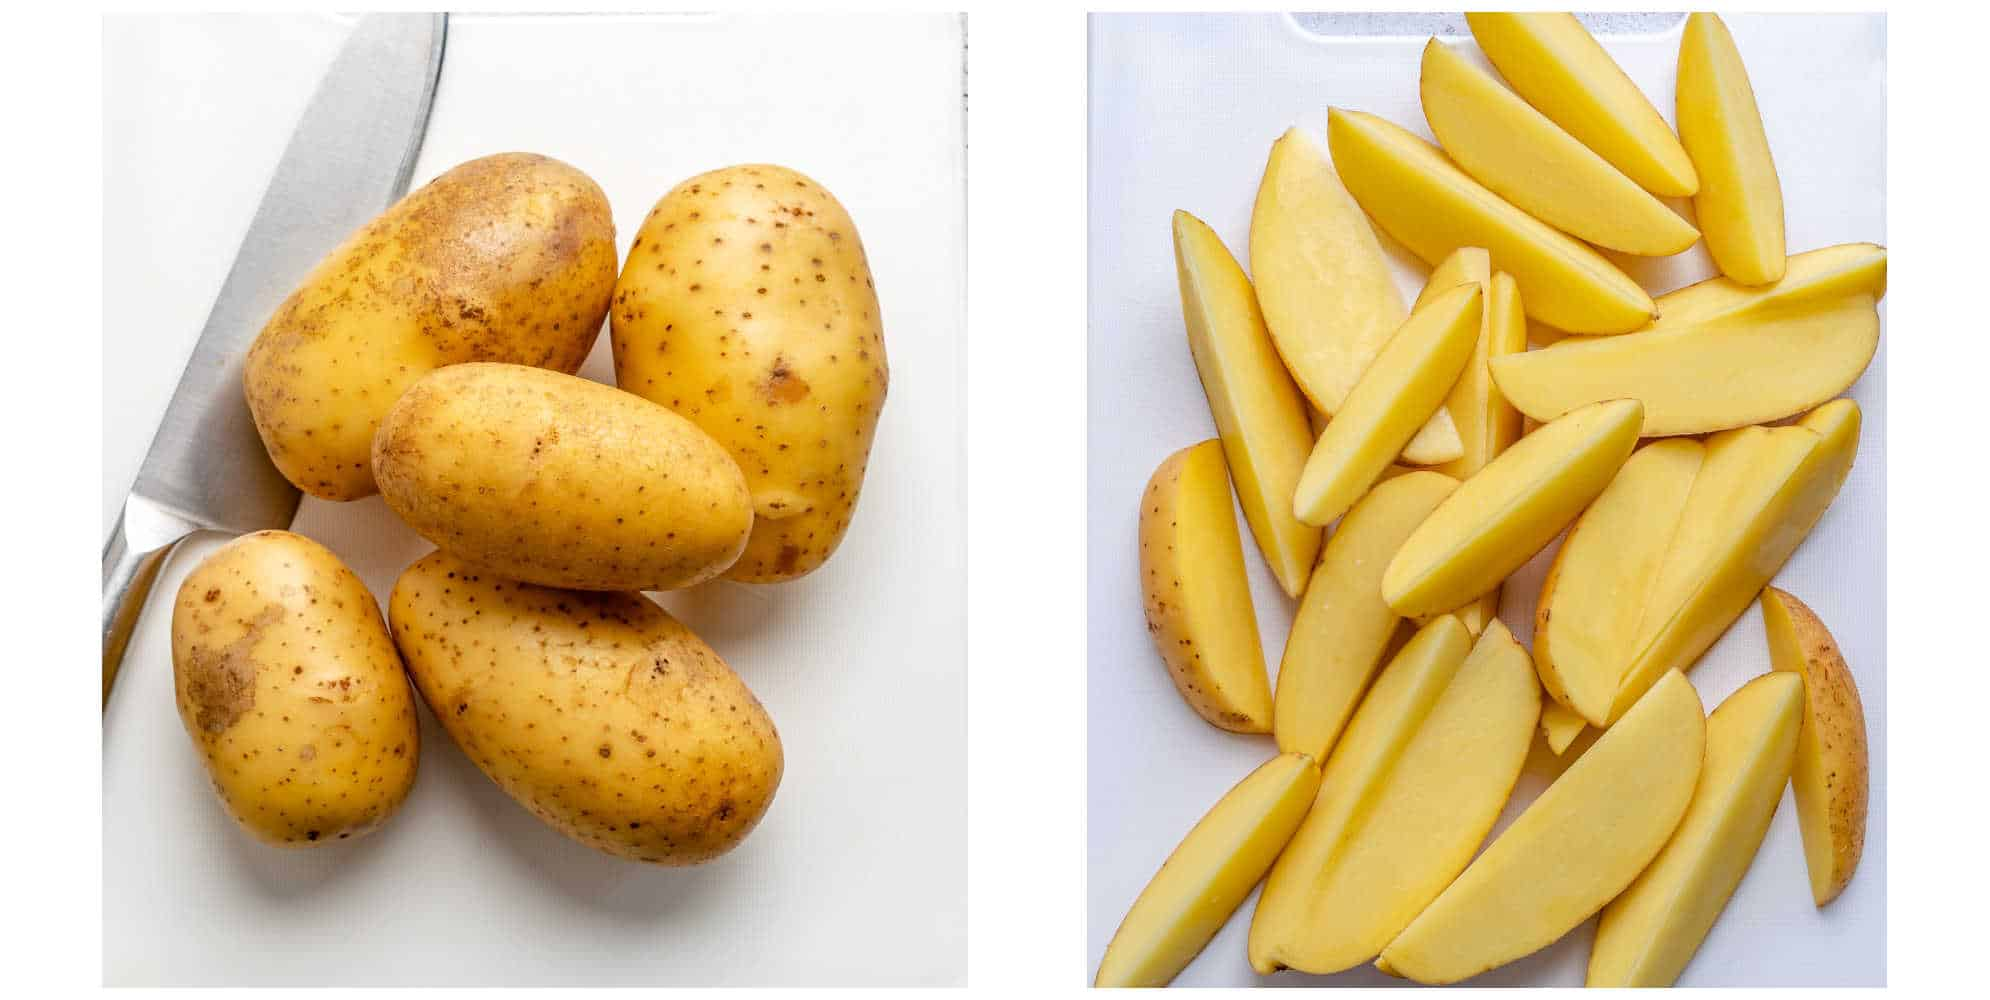 potato collage, whole potatoes on the left and cut up on the right